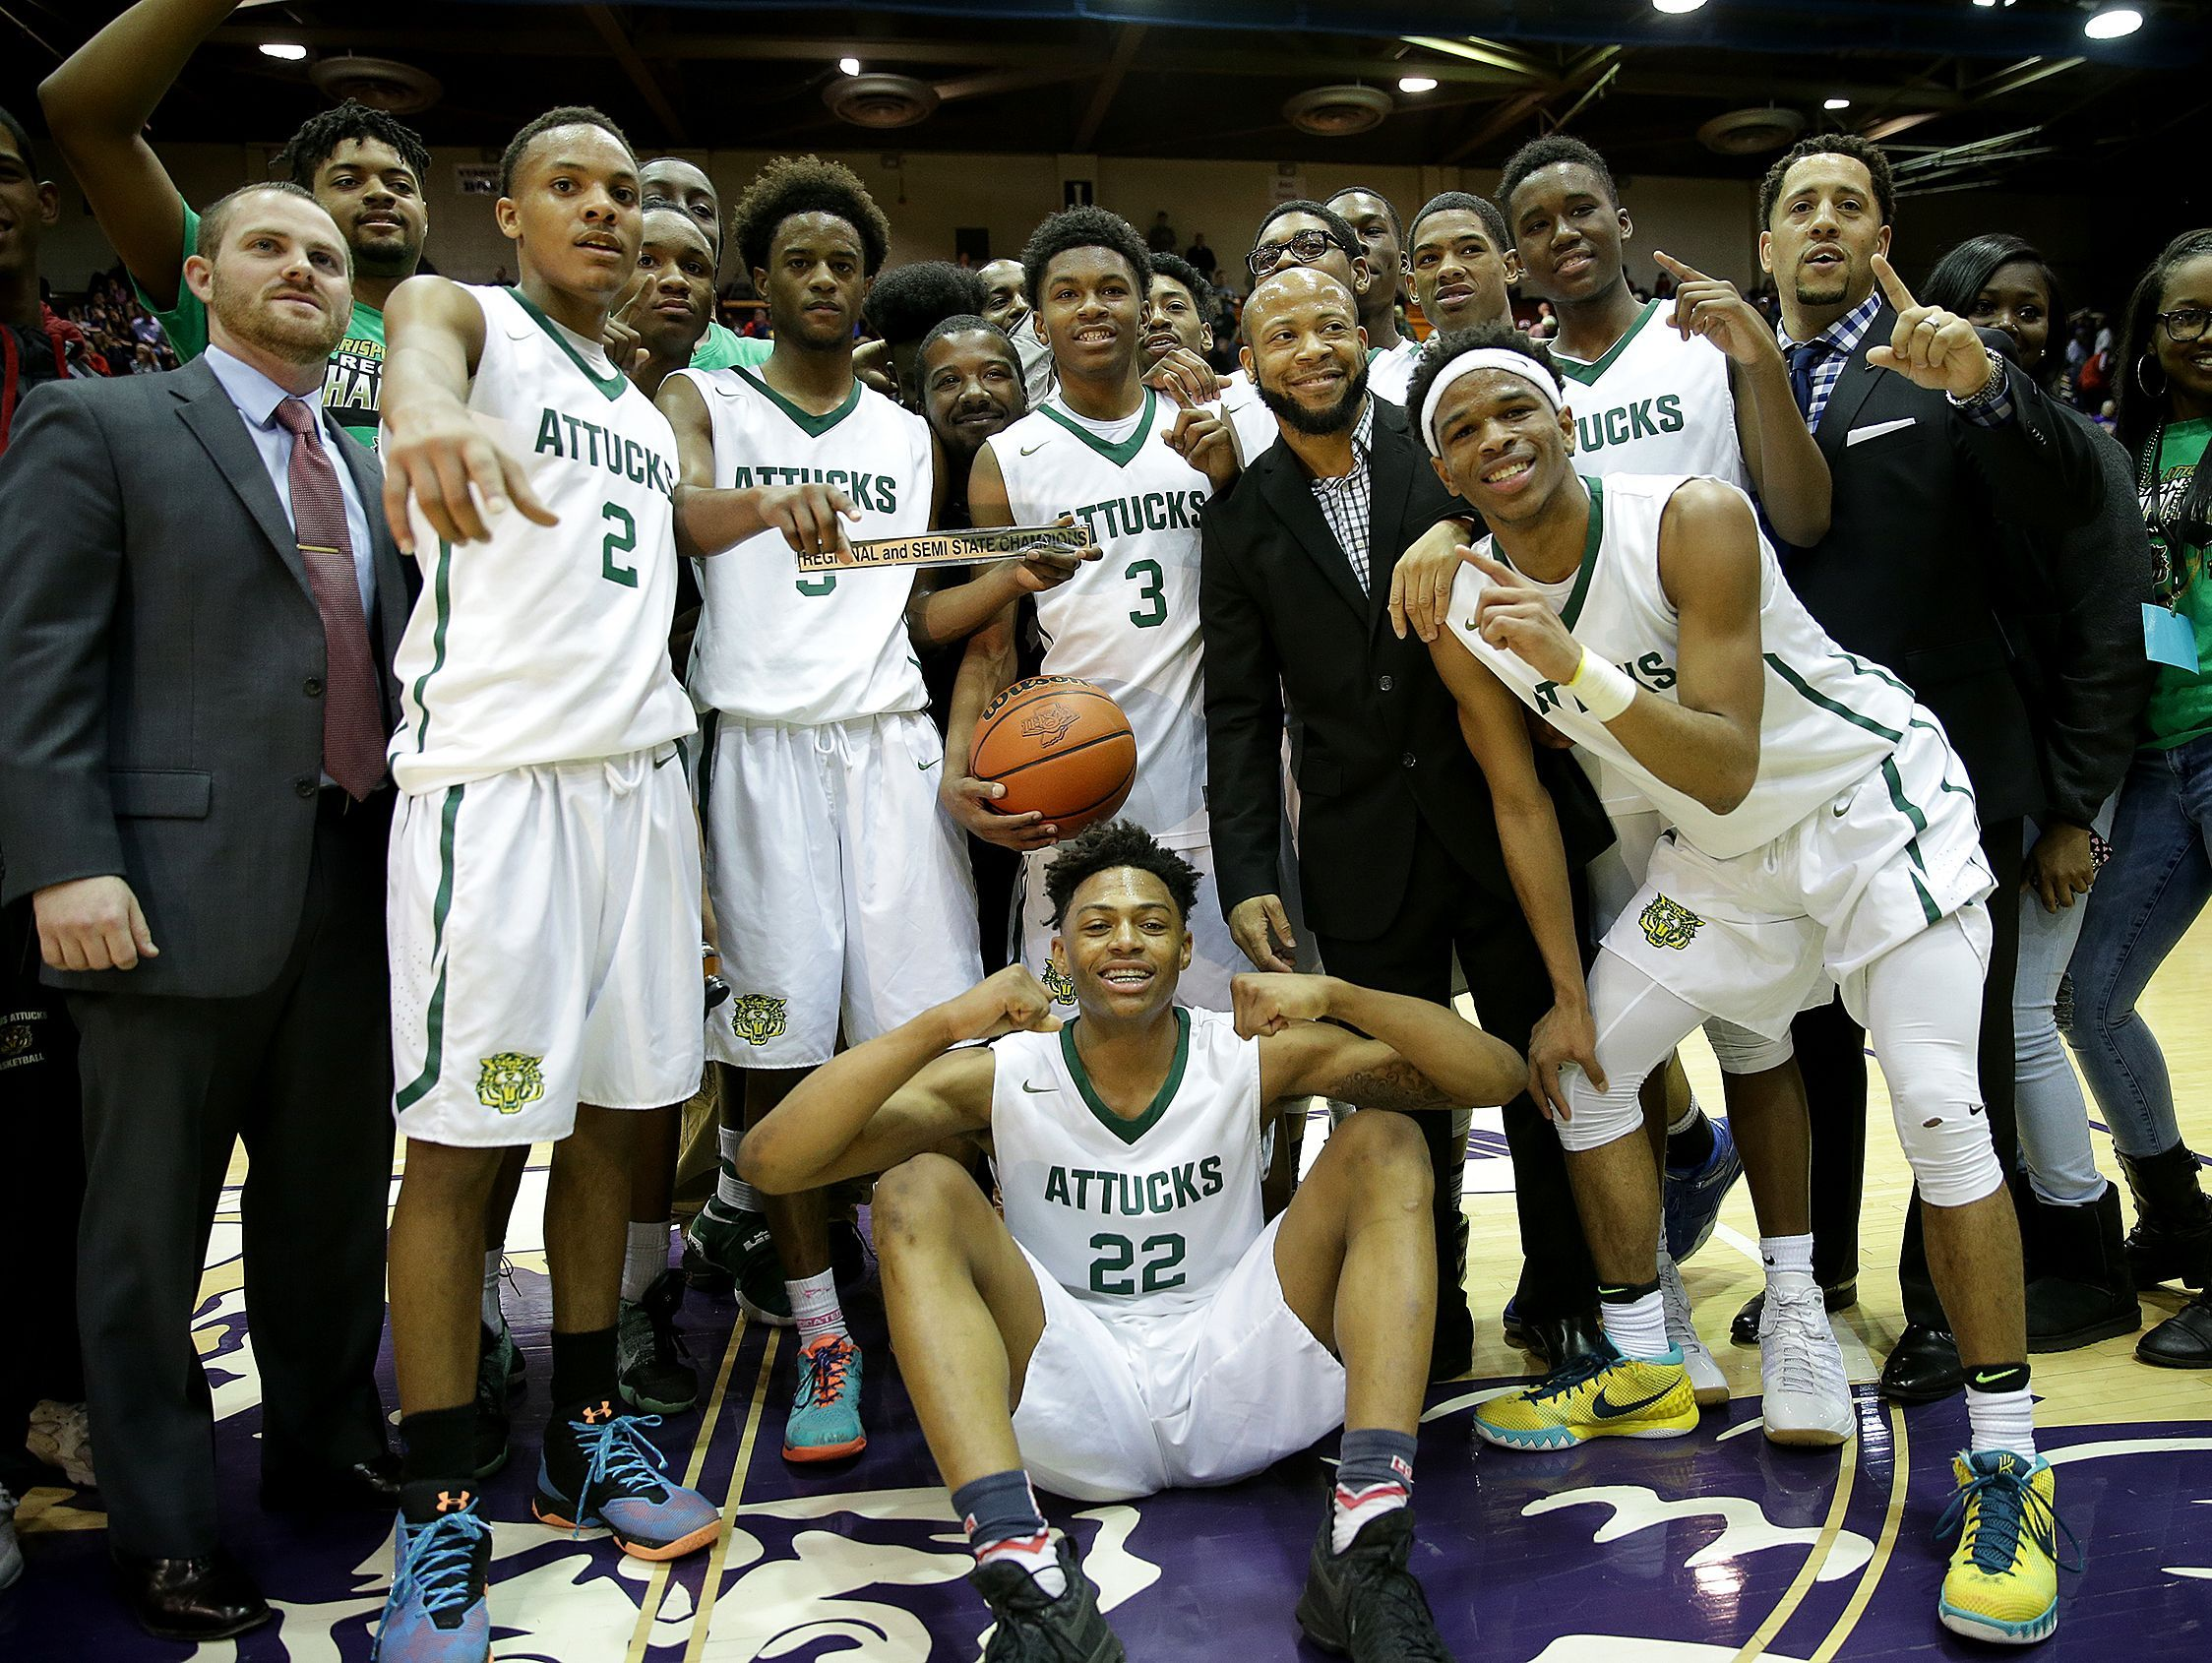 The Crispus Attucks Tigers celebrates their IHSAA boys semi-state win Saturday, March 18, 2017, afternoon in Seymour IN. Crispus Attucks Tigers defeated the Bosse Bulldogs to advance to their first boys state title game since 1959.